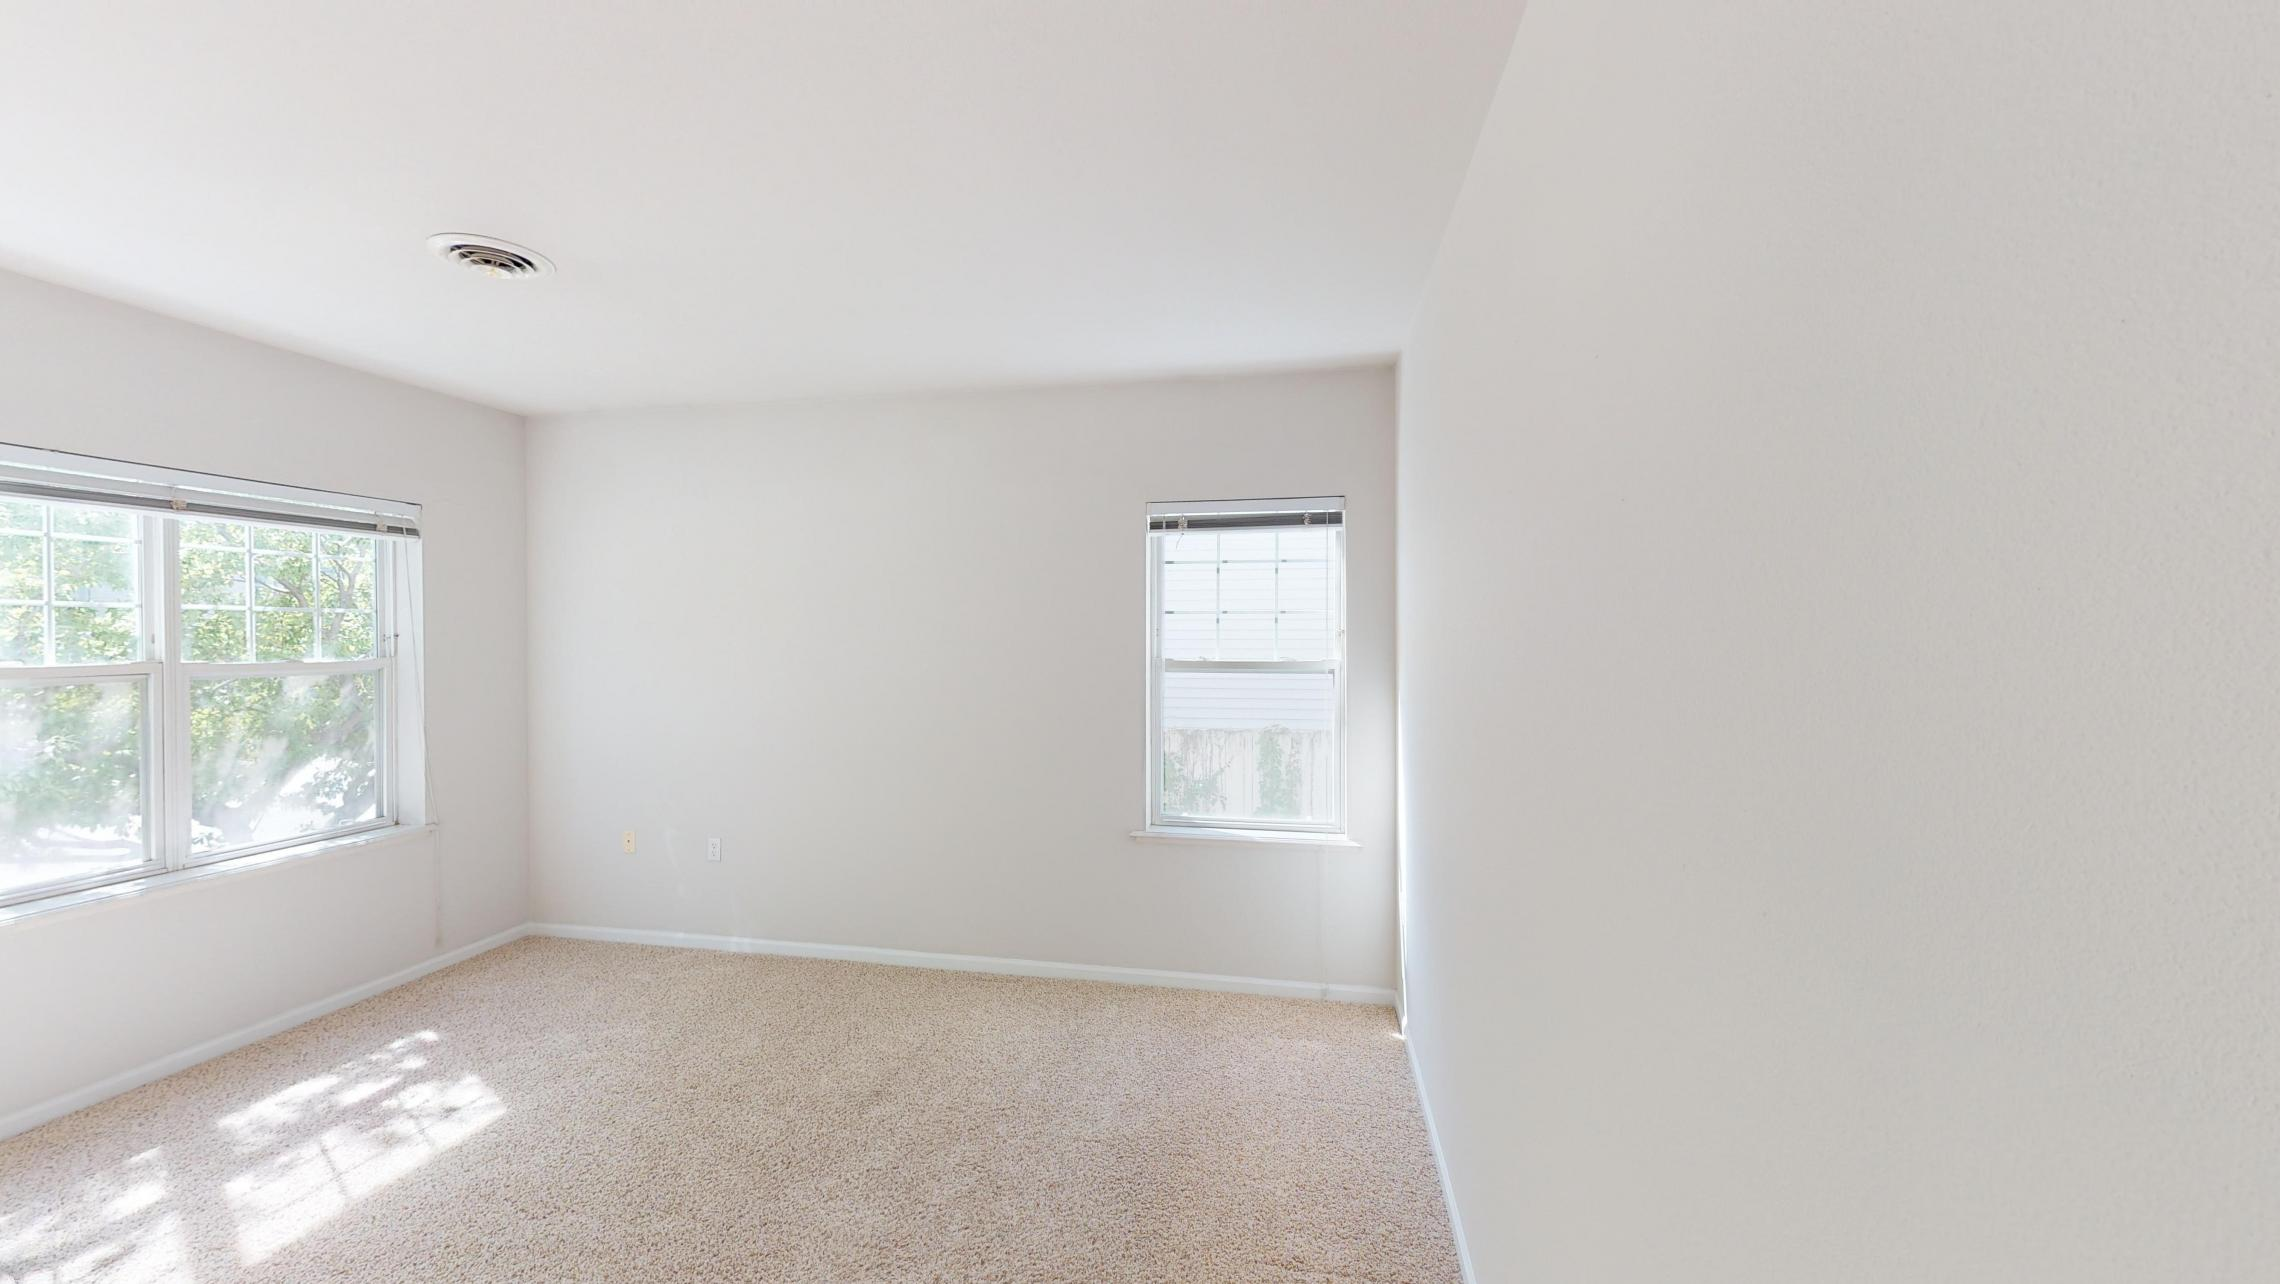 Wilson-Bay-Apartment-112-Two-Bedroom-Downtown-Madison-Master-Bedroom.jpg